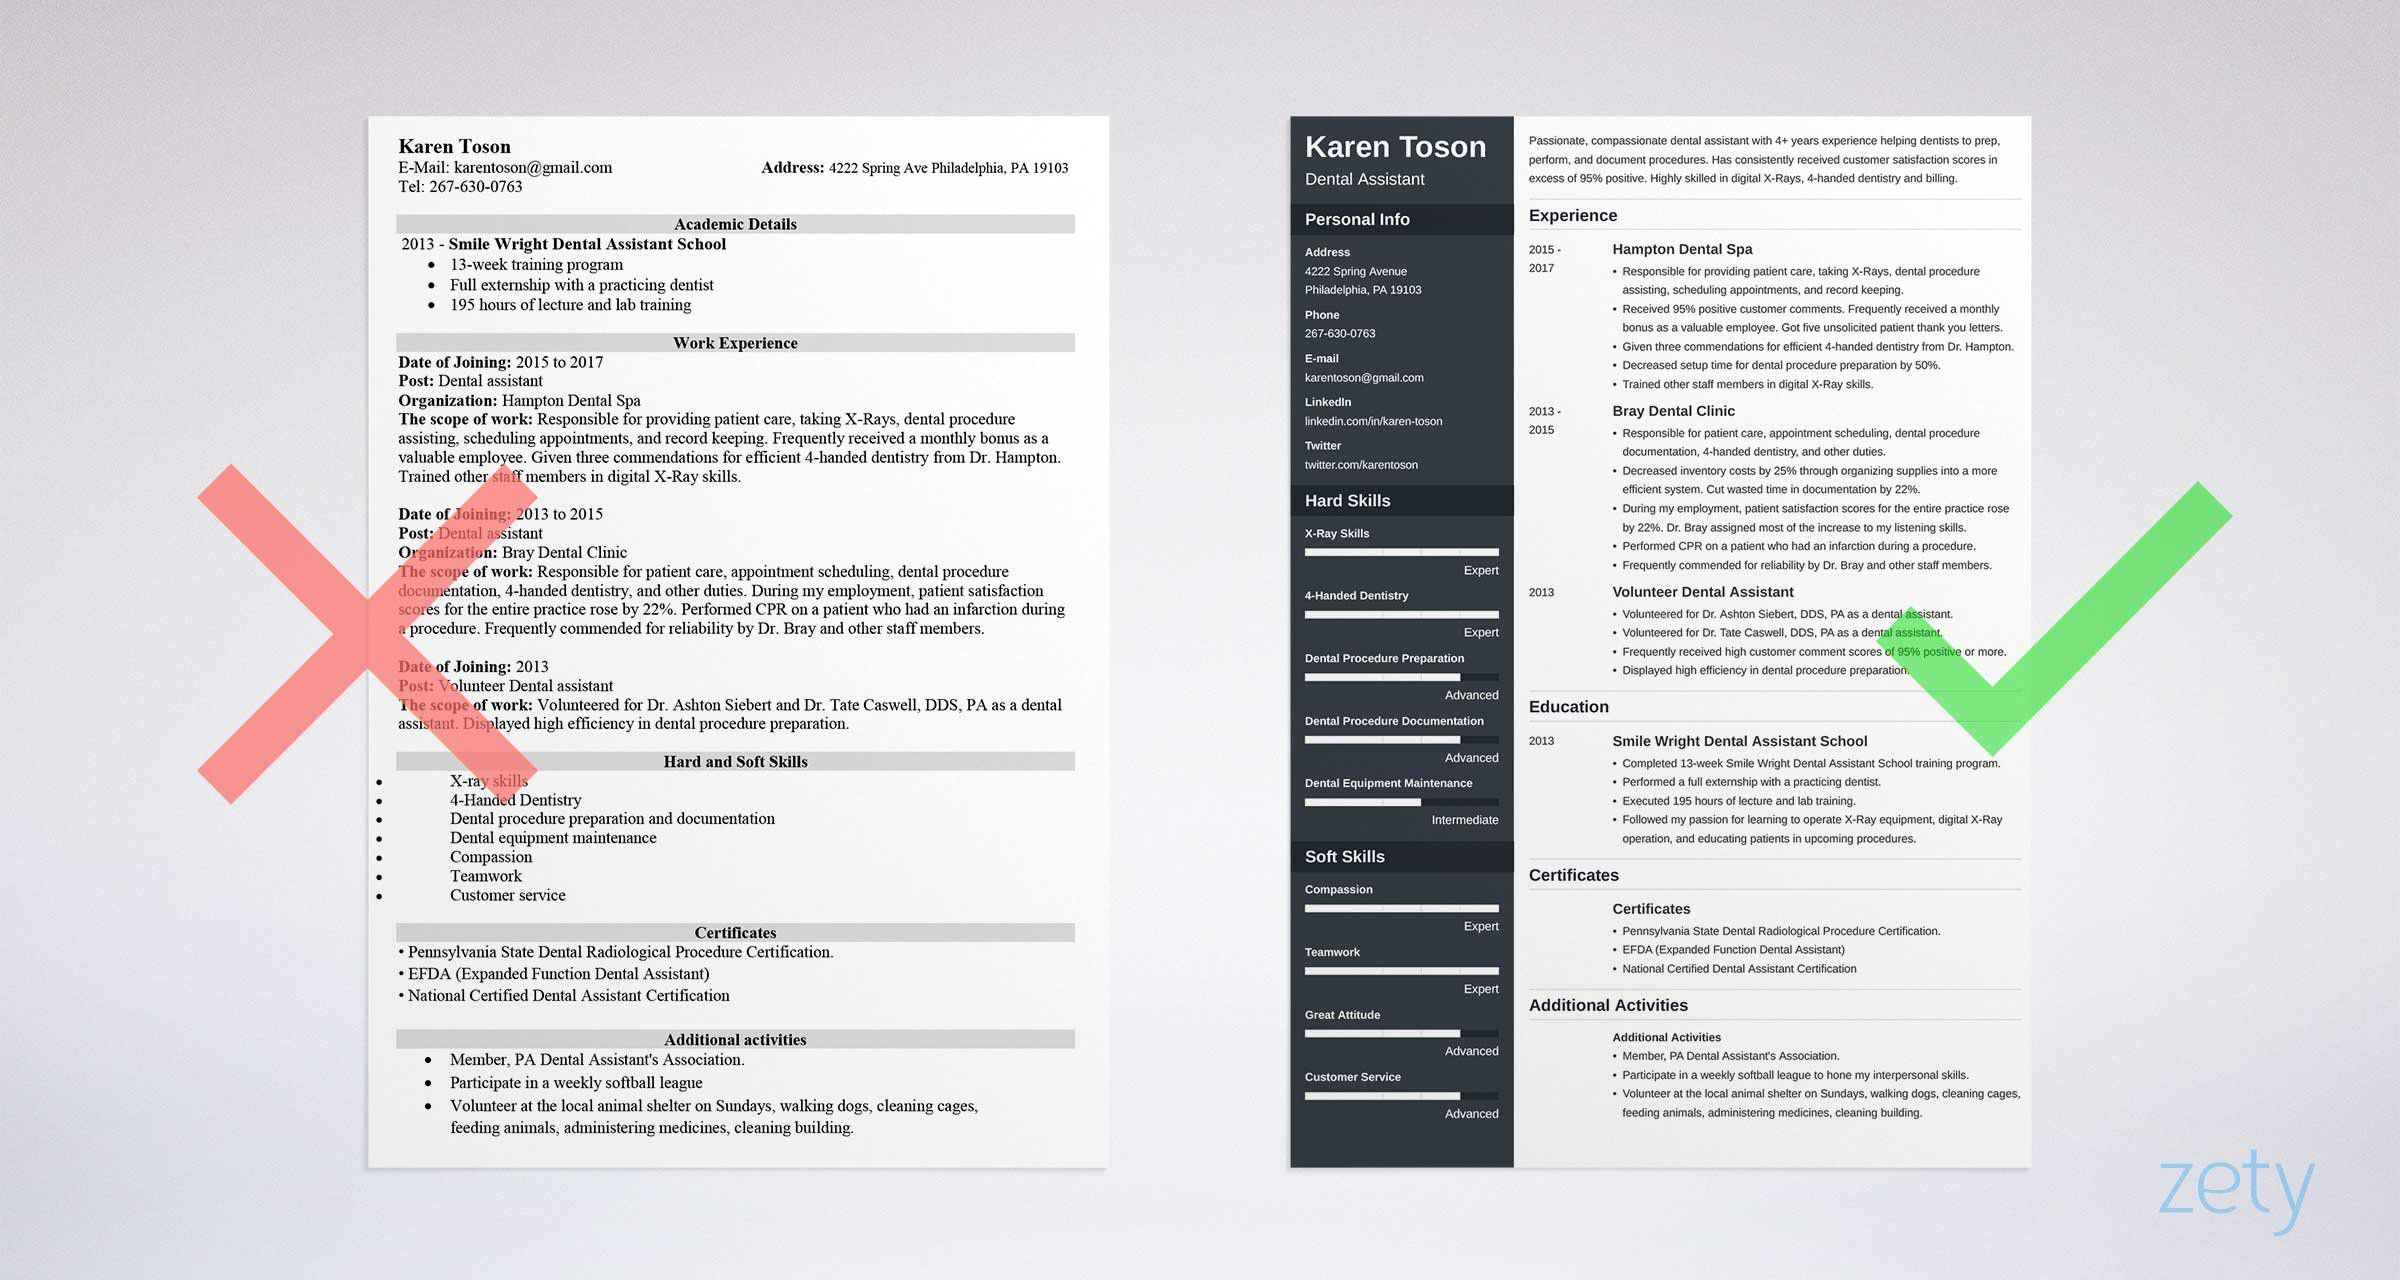 003 Shocking 1 Page Resume Template Highest Quality  Templates One Basic Word Free Html DownloadFull